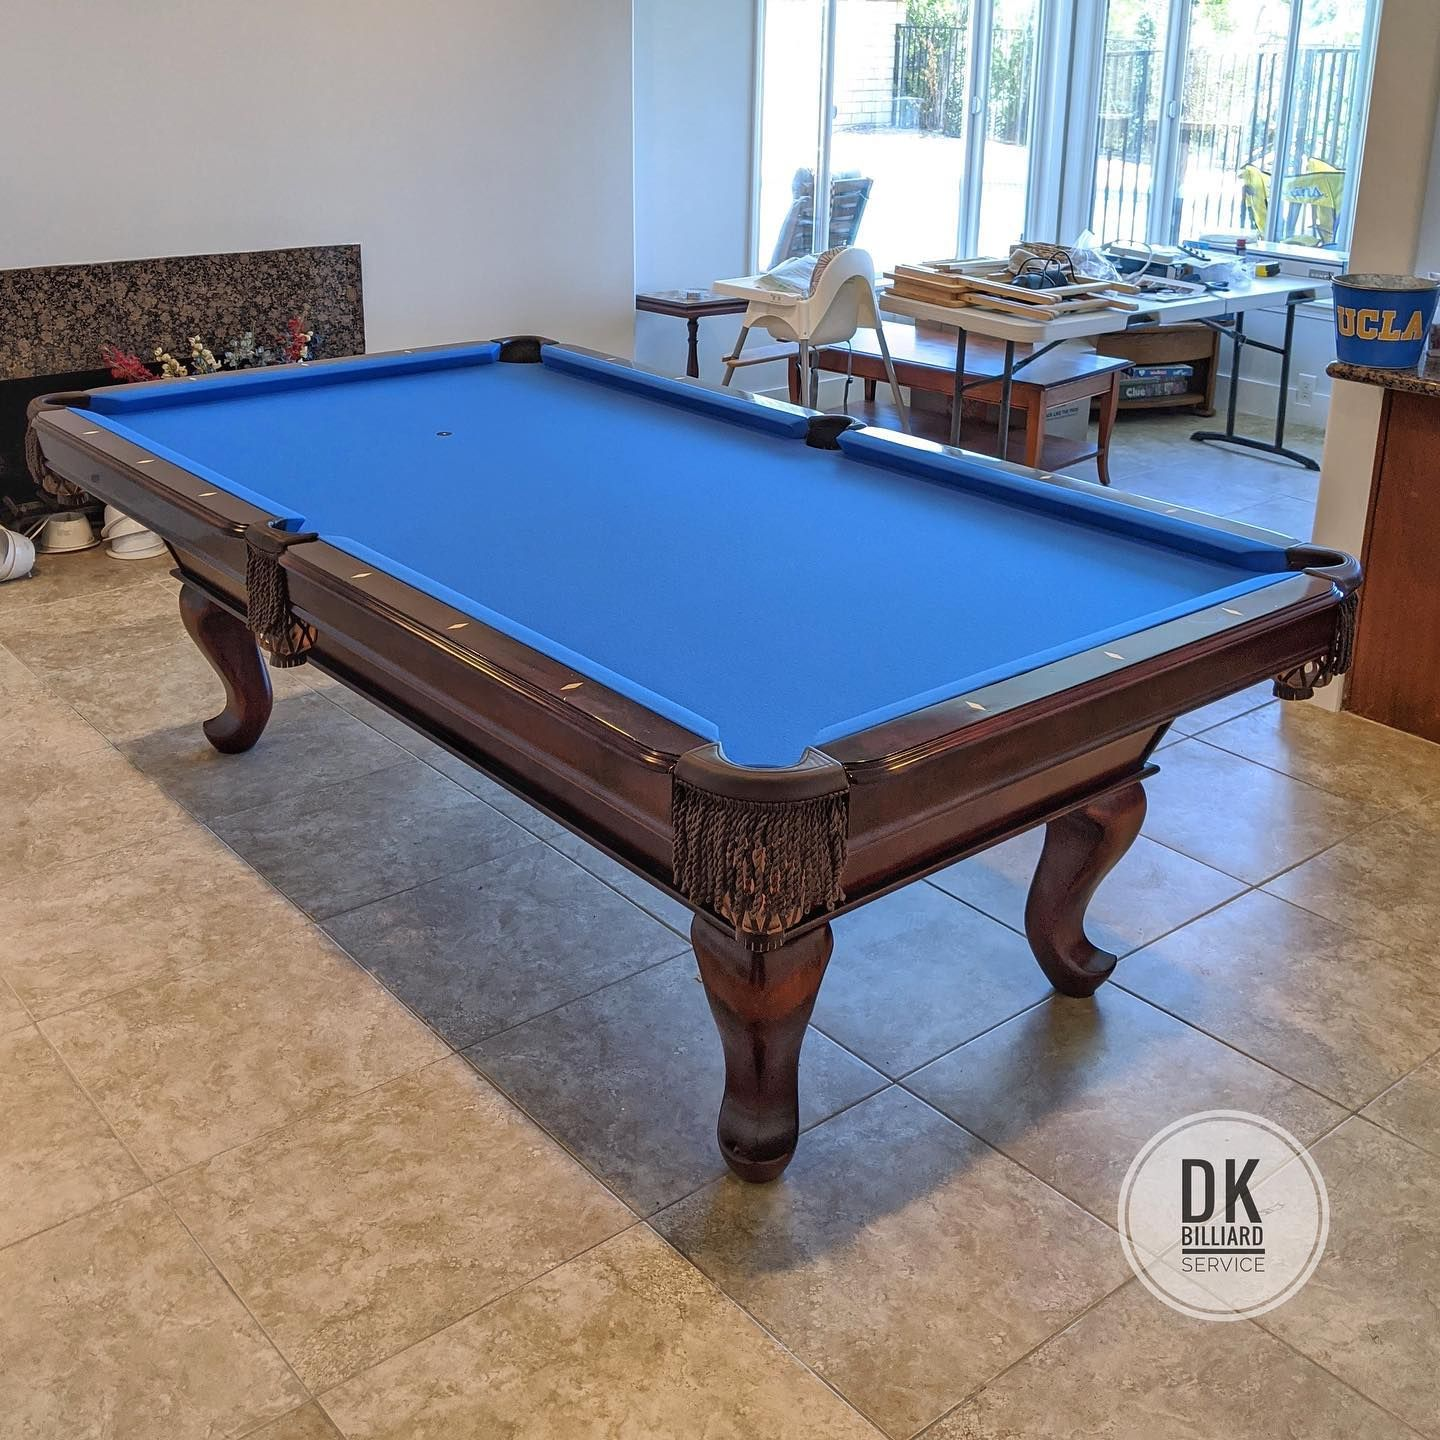 8 foot ABC Tiburon pool table installation in North Tustin. New